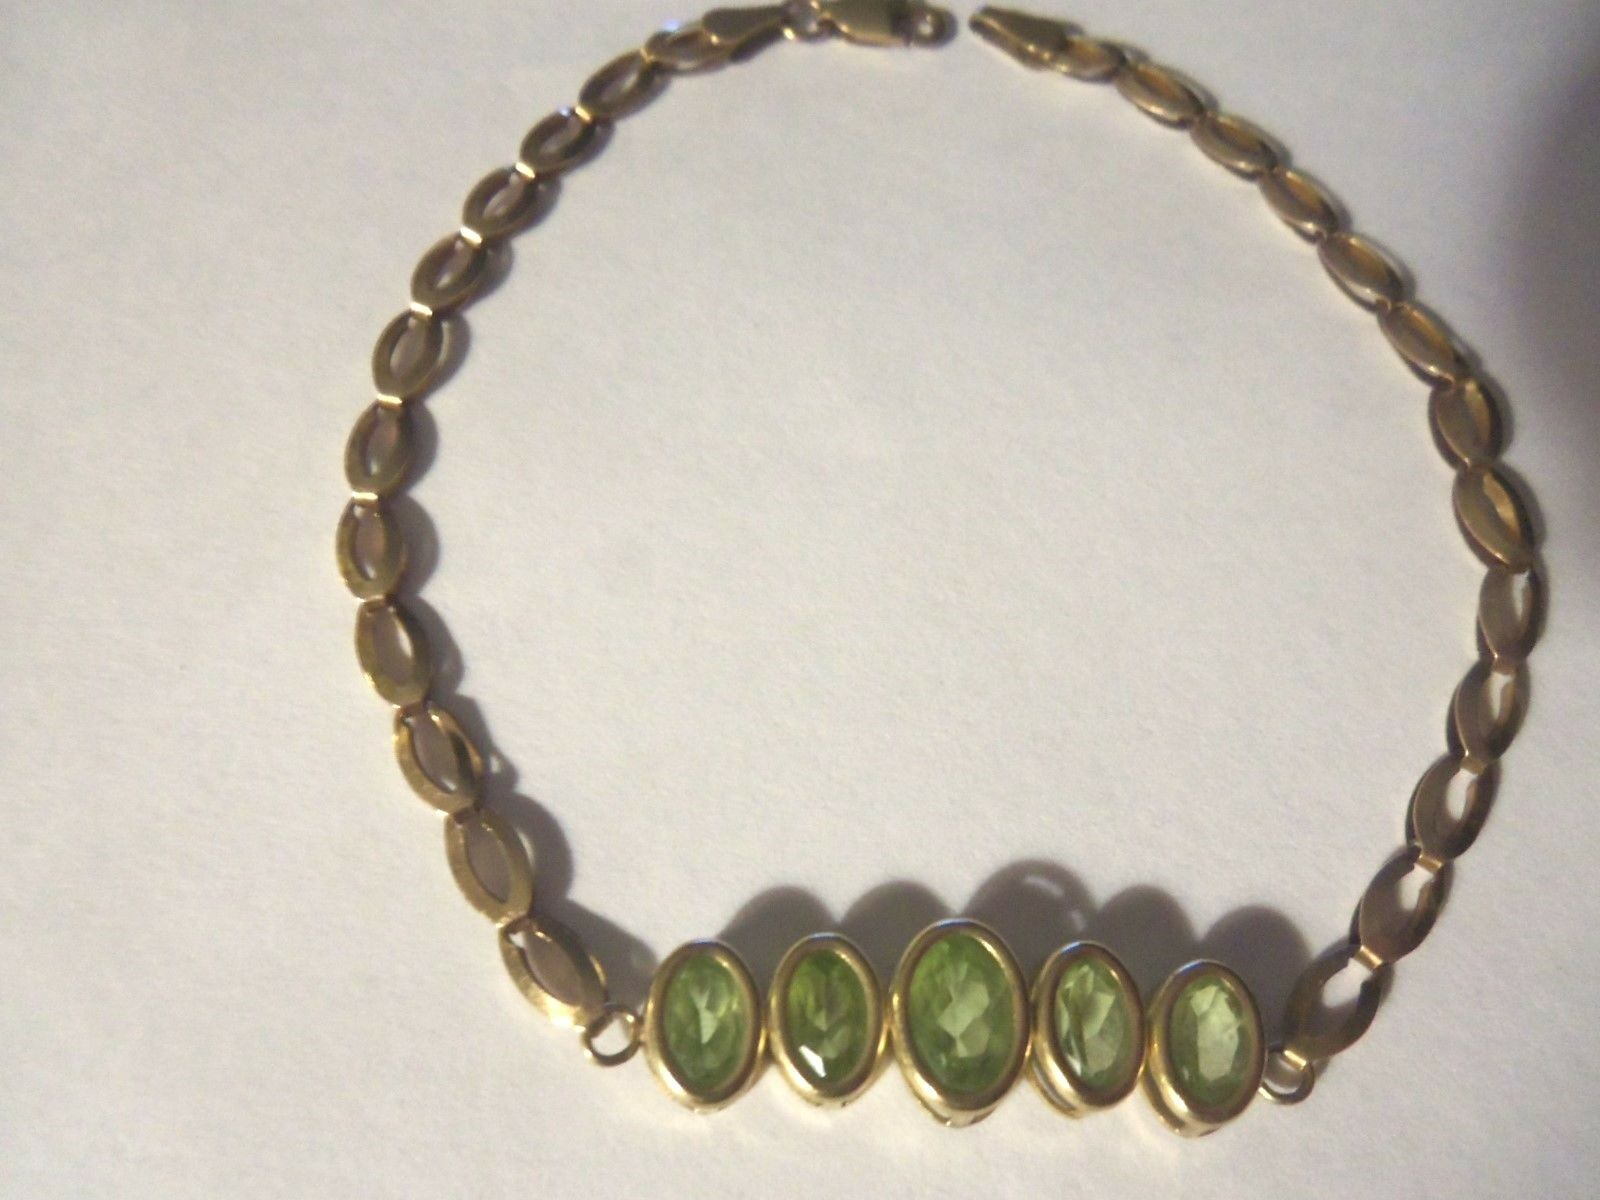 BEAUTIFUL 10 KT gold AND PERIDOT BRACELET...7 1 2 INCHES